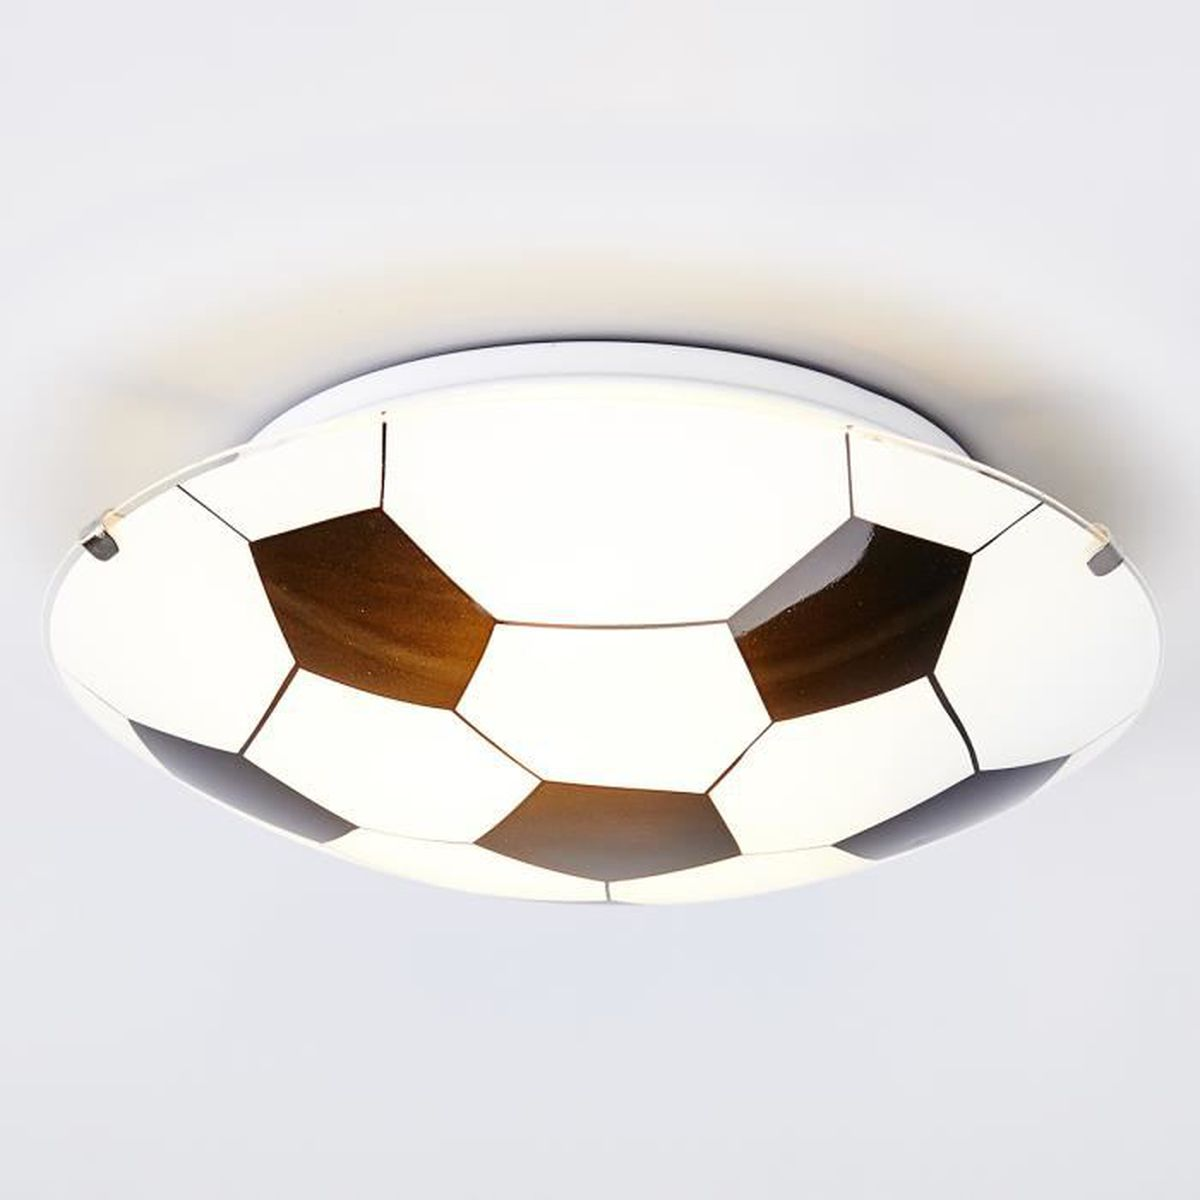 luminaire football. Black Bedroom Furniture Sets. Home Design Ideas